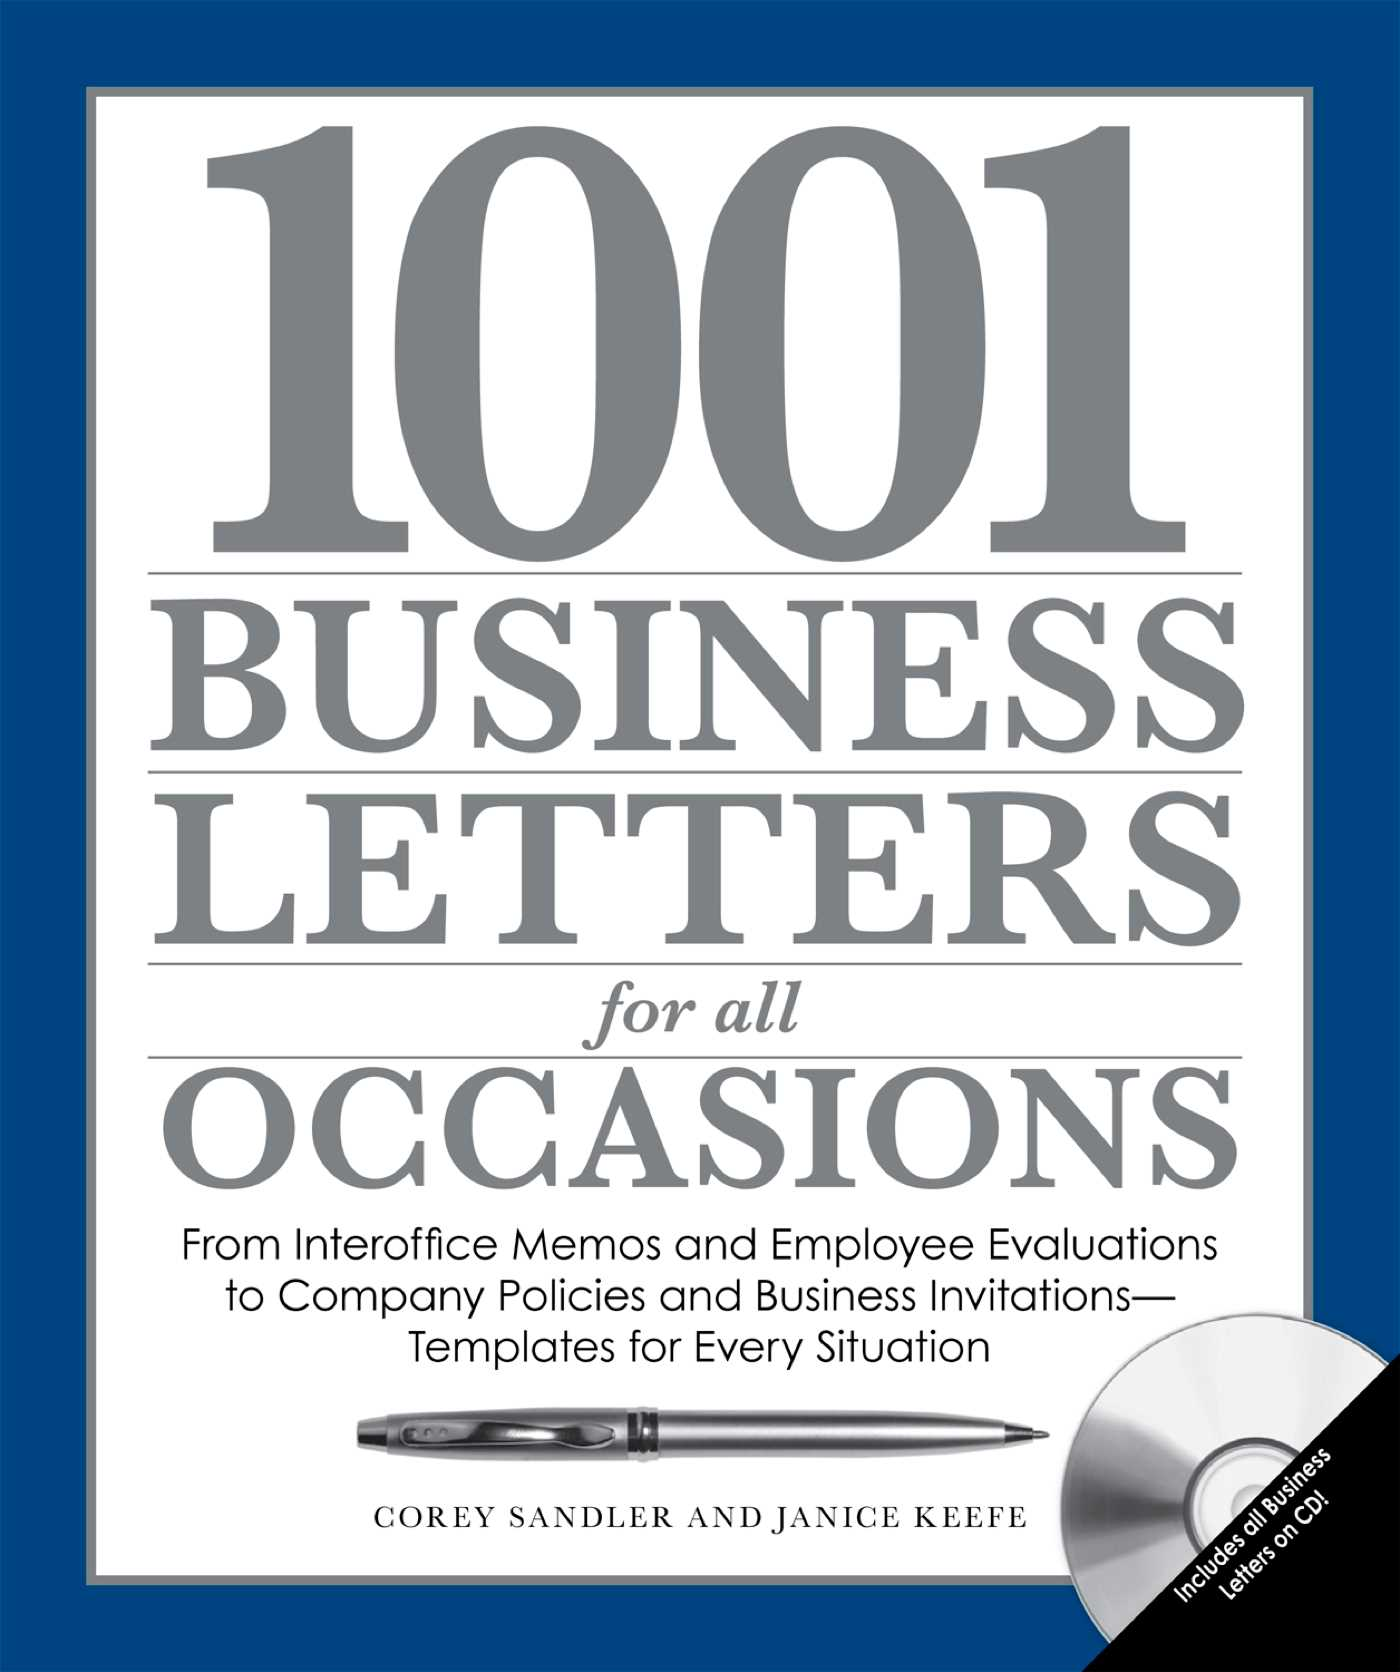 1001 business letters for all occasions 9781440514722 hr